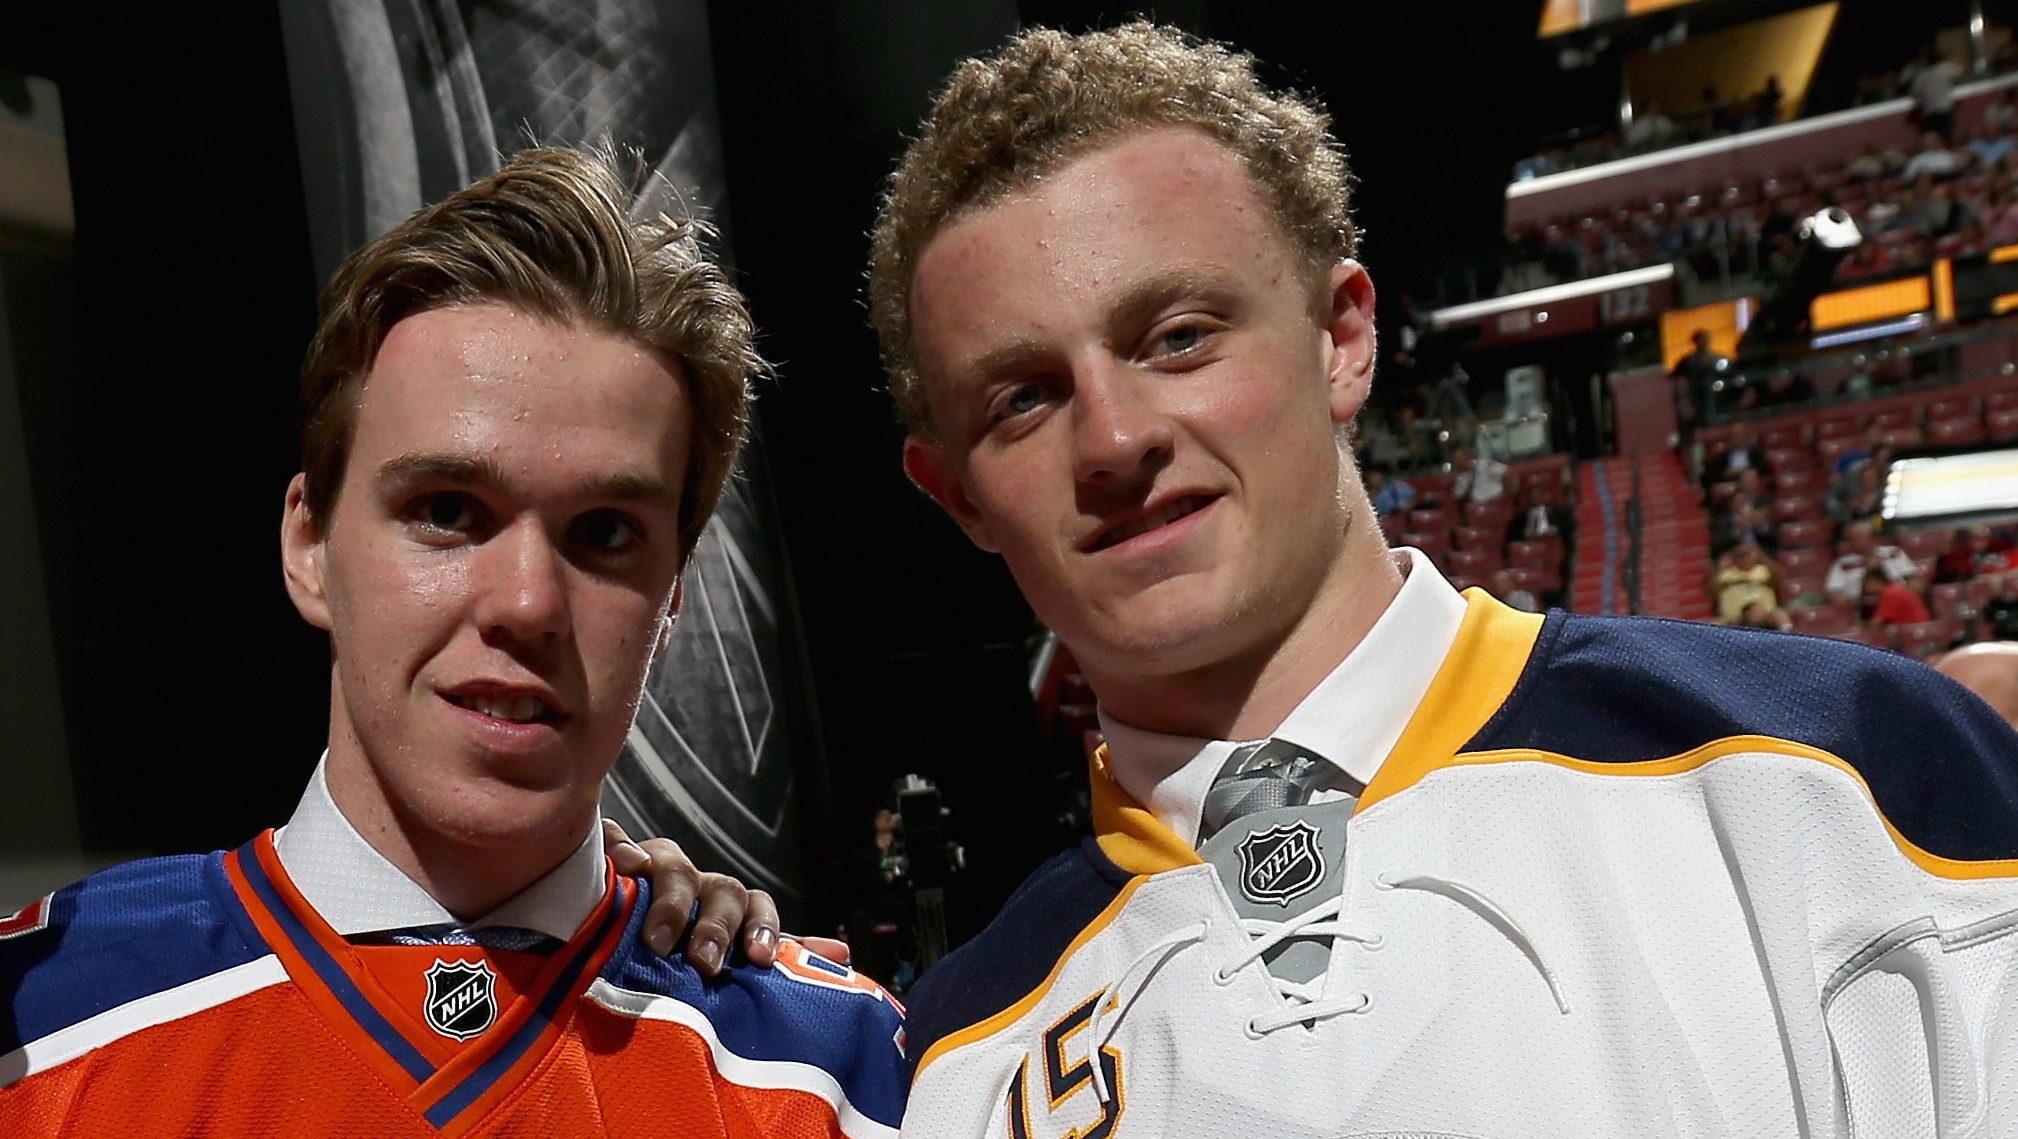 Jack Eichel, Connor McDavid have wrong